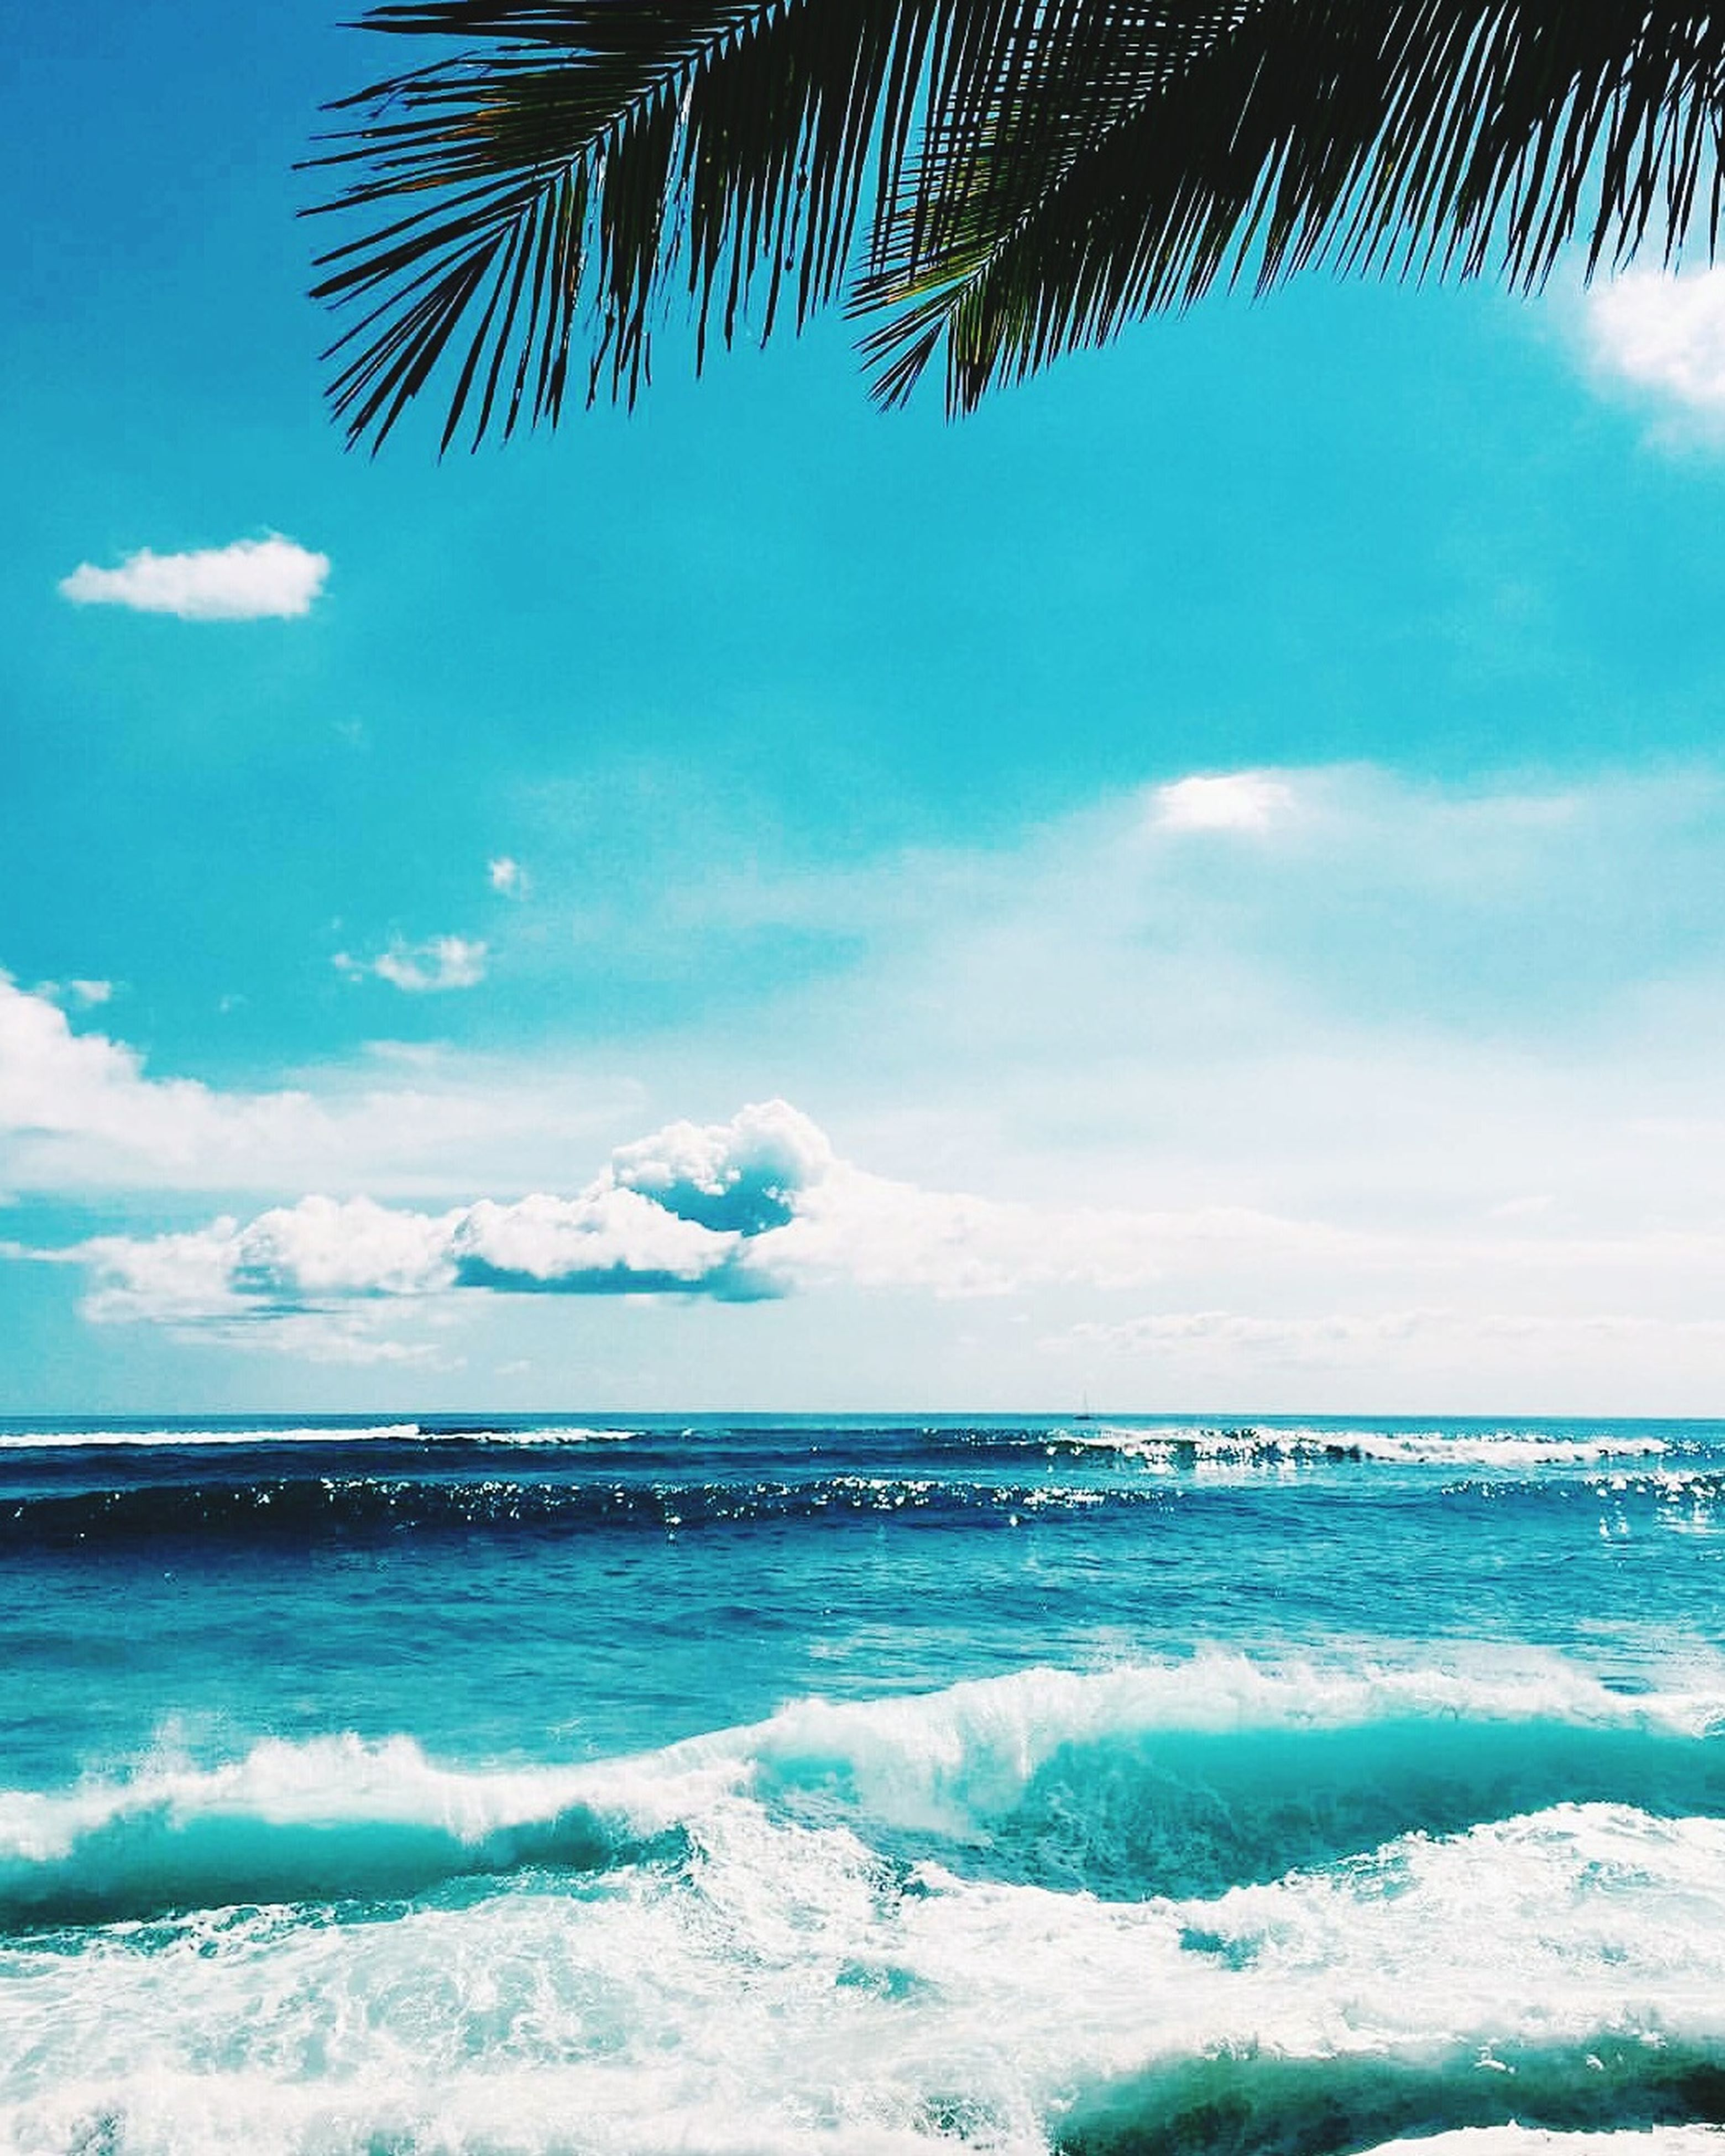 sea, beach, horizon over water, water, sky, palm tree, scenics, blue, beauty in nature, shore, tranquil scene, tranquility, nature, wave, cloud - sky, cloud, idyllic, vacations, tropical climate, day, outdoors, seascape, coastline, no people, non-urban scene, tourism, ocean, remote, travel destinations, calm, cloudy